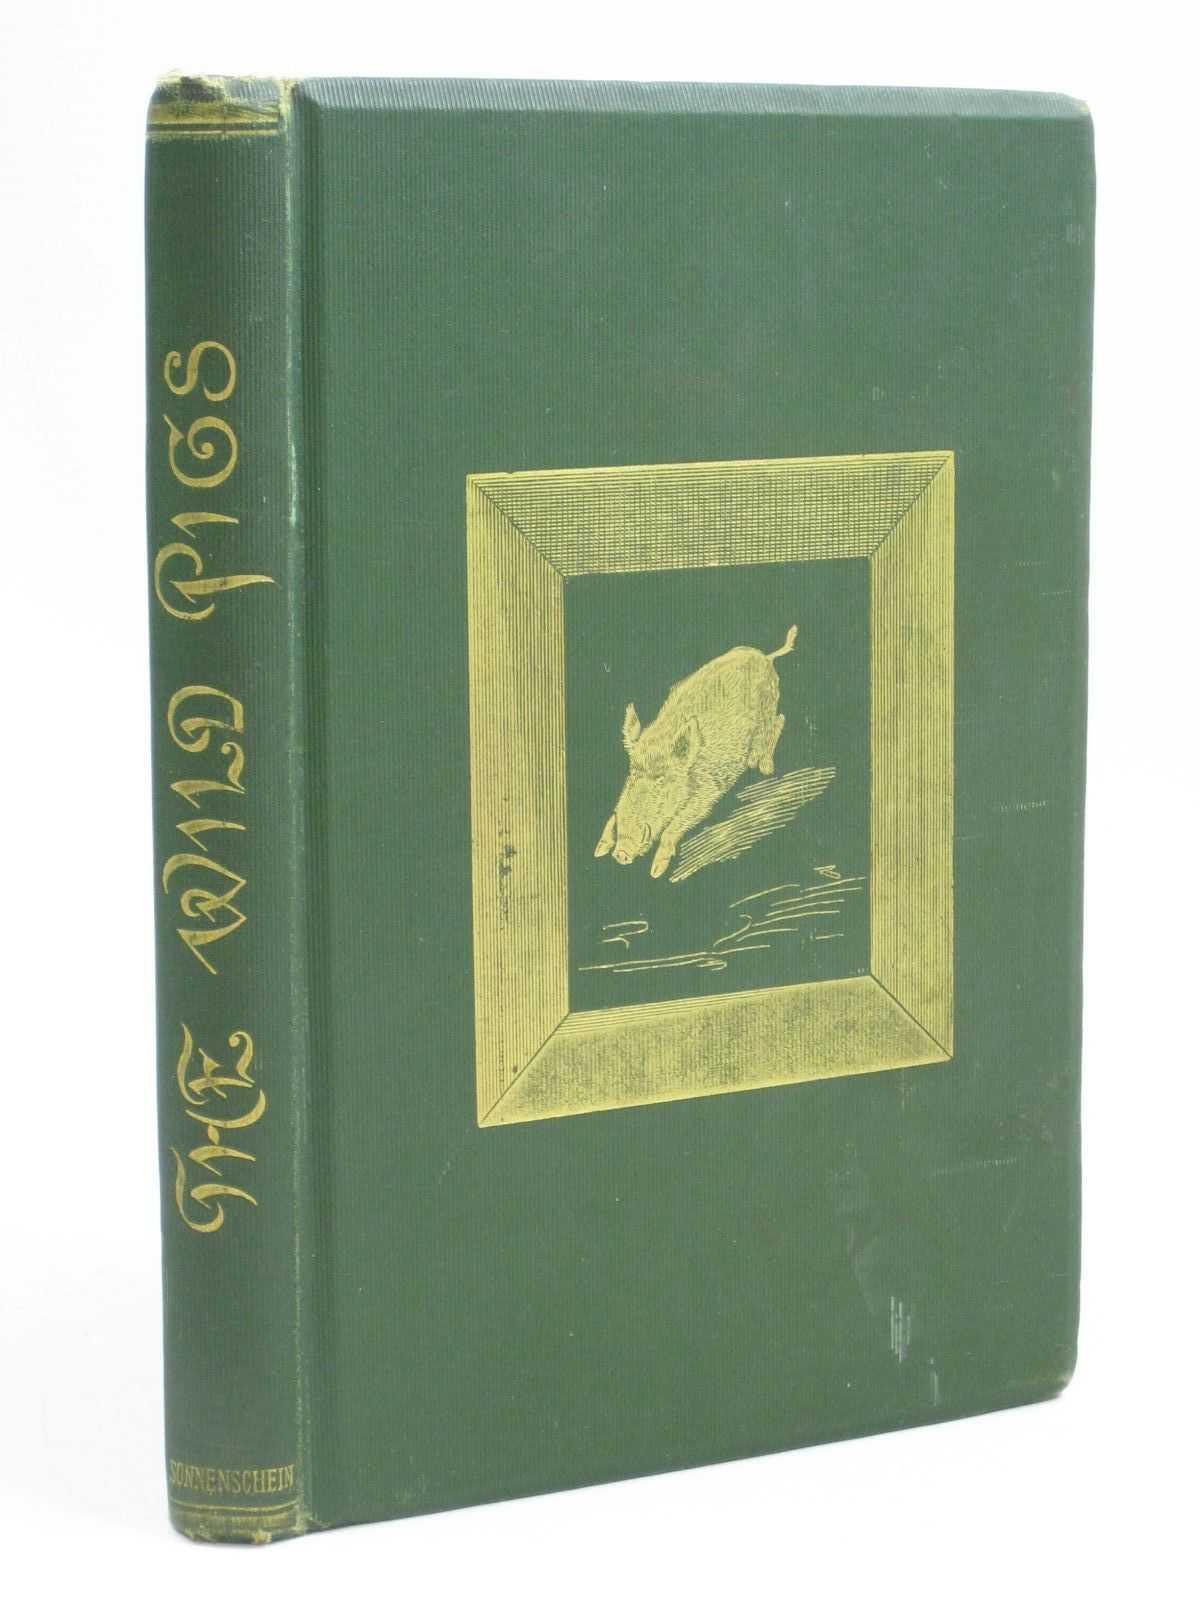 Photo of THE WILD PIGS written by Young, Gerald illustrated by Parkinson, W. published by Swan Sonnenschein & Co. Ltd. (STOCK CODE: 1315822)  for sale by Stella & Rose's Books